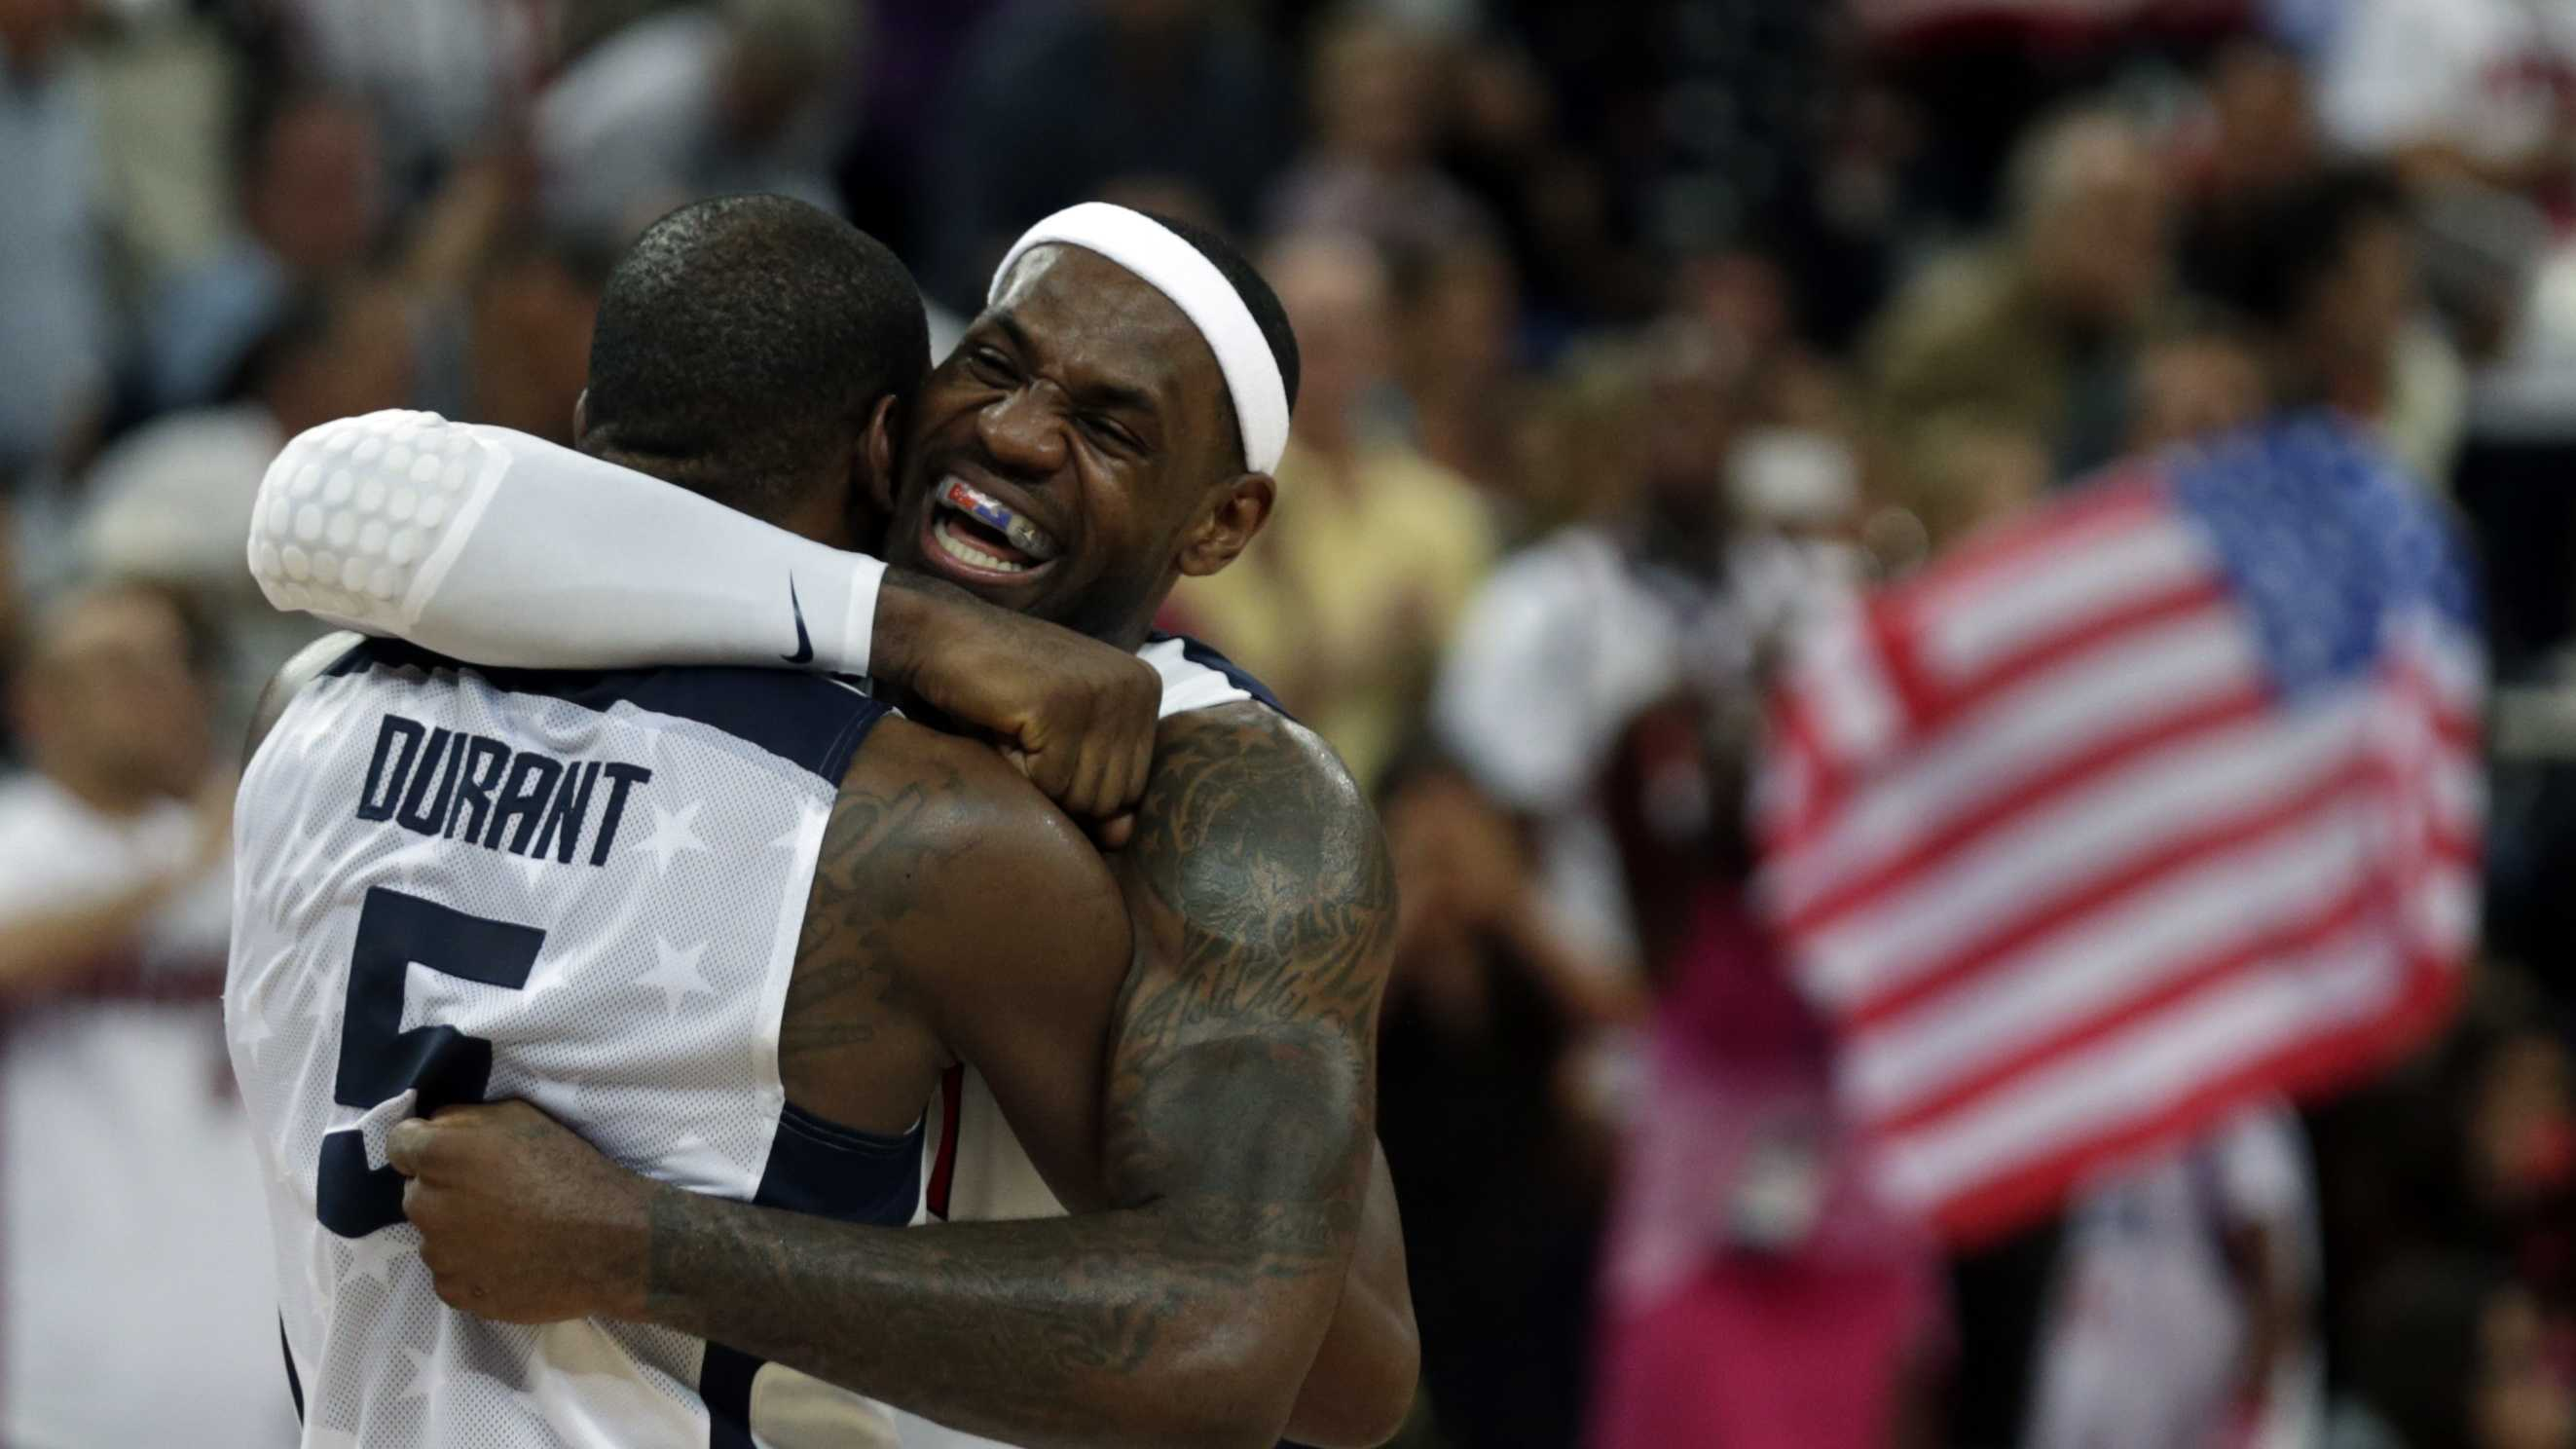 United States' LeBron James and Kevin Durant after winning the men's gold medal basketball game against Spain.